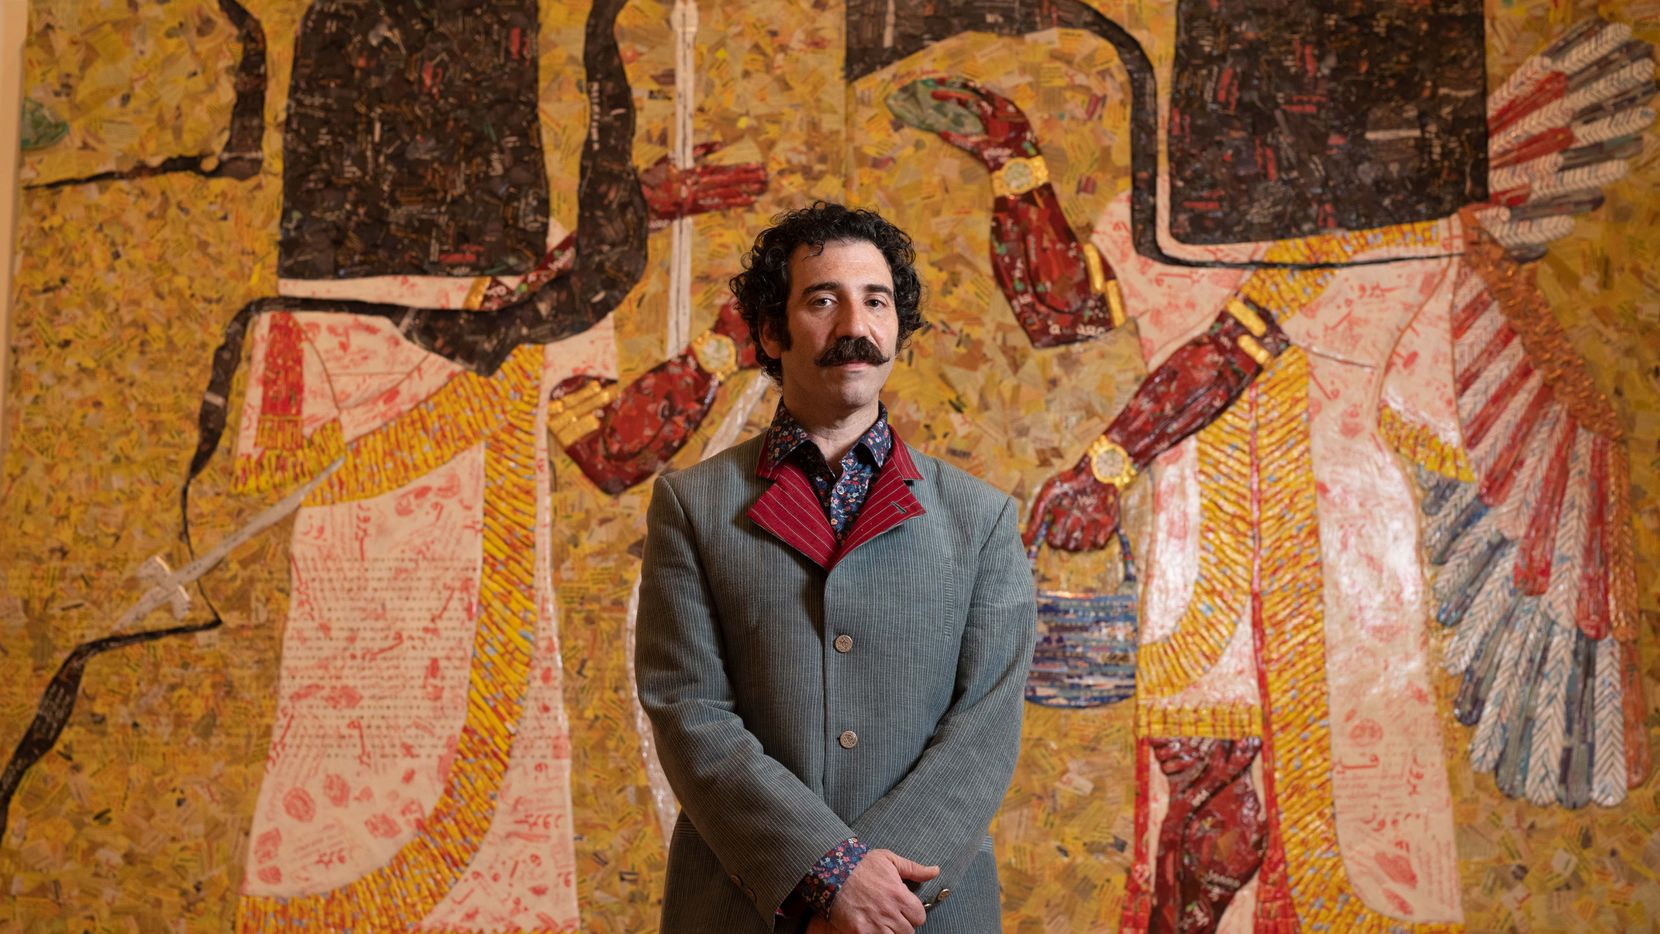 Michael Rakowitz, winner of the 2020 Nasher Prize, is finally getting to take part in some of the in-person events associated with the honor. He plans to use the $100,000 in prize money to continue his work centering on Iraq.